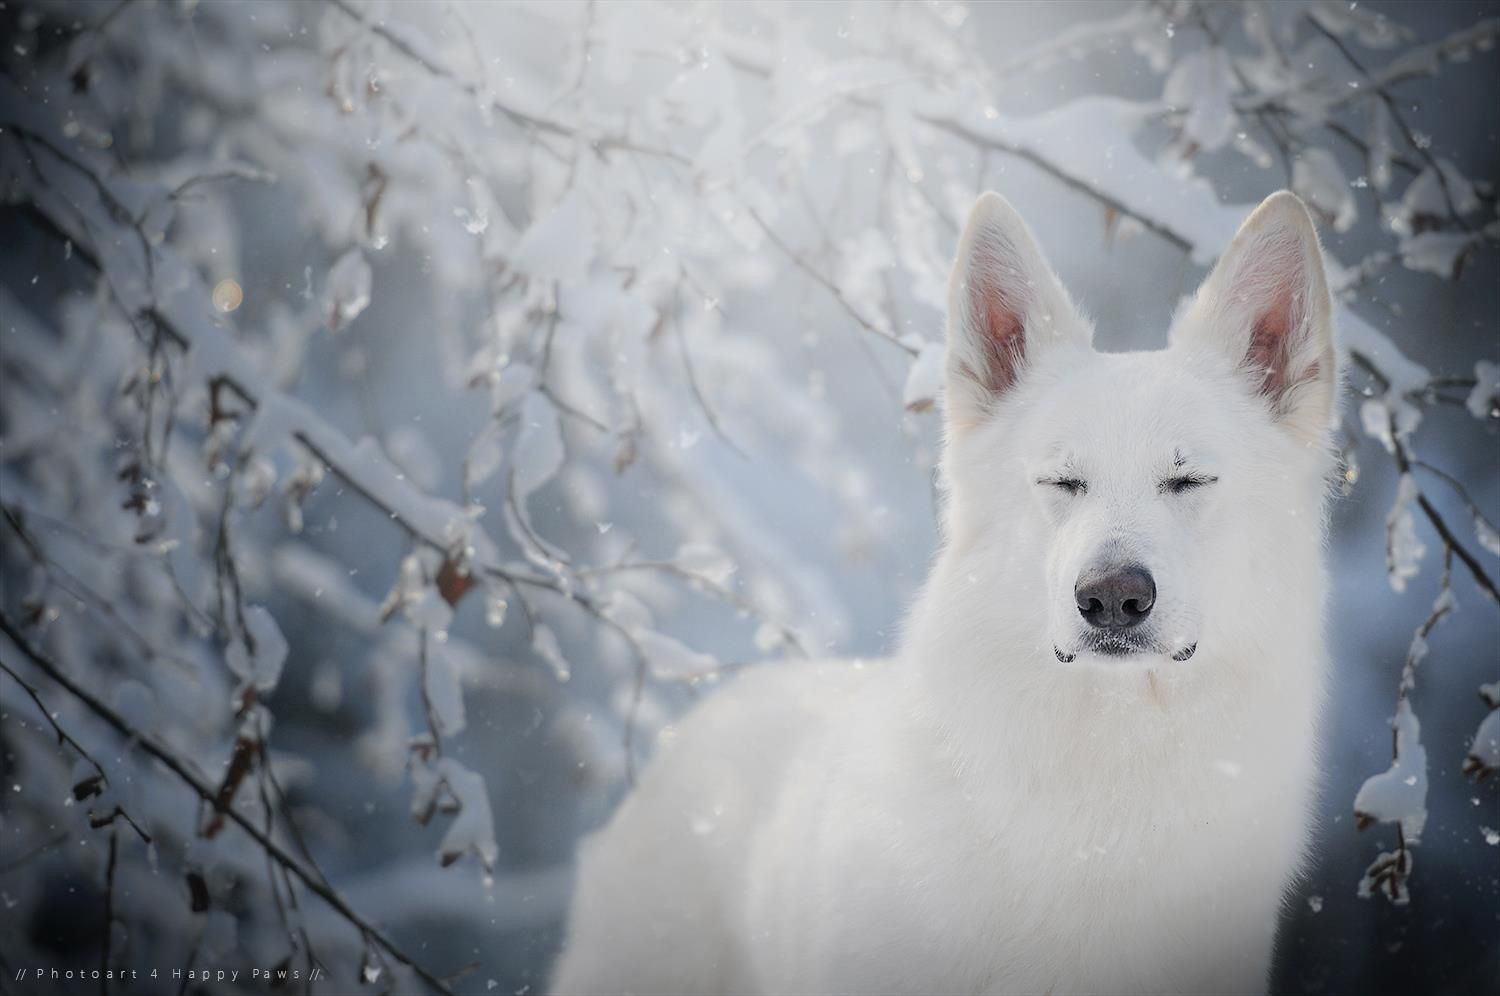 Pin By Bendale On White German Shepherd Dogs Part I Dogs Dog Poses Dog Photograph